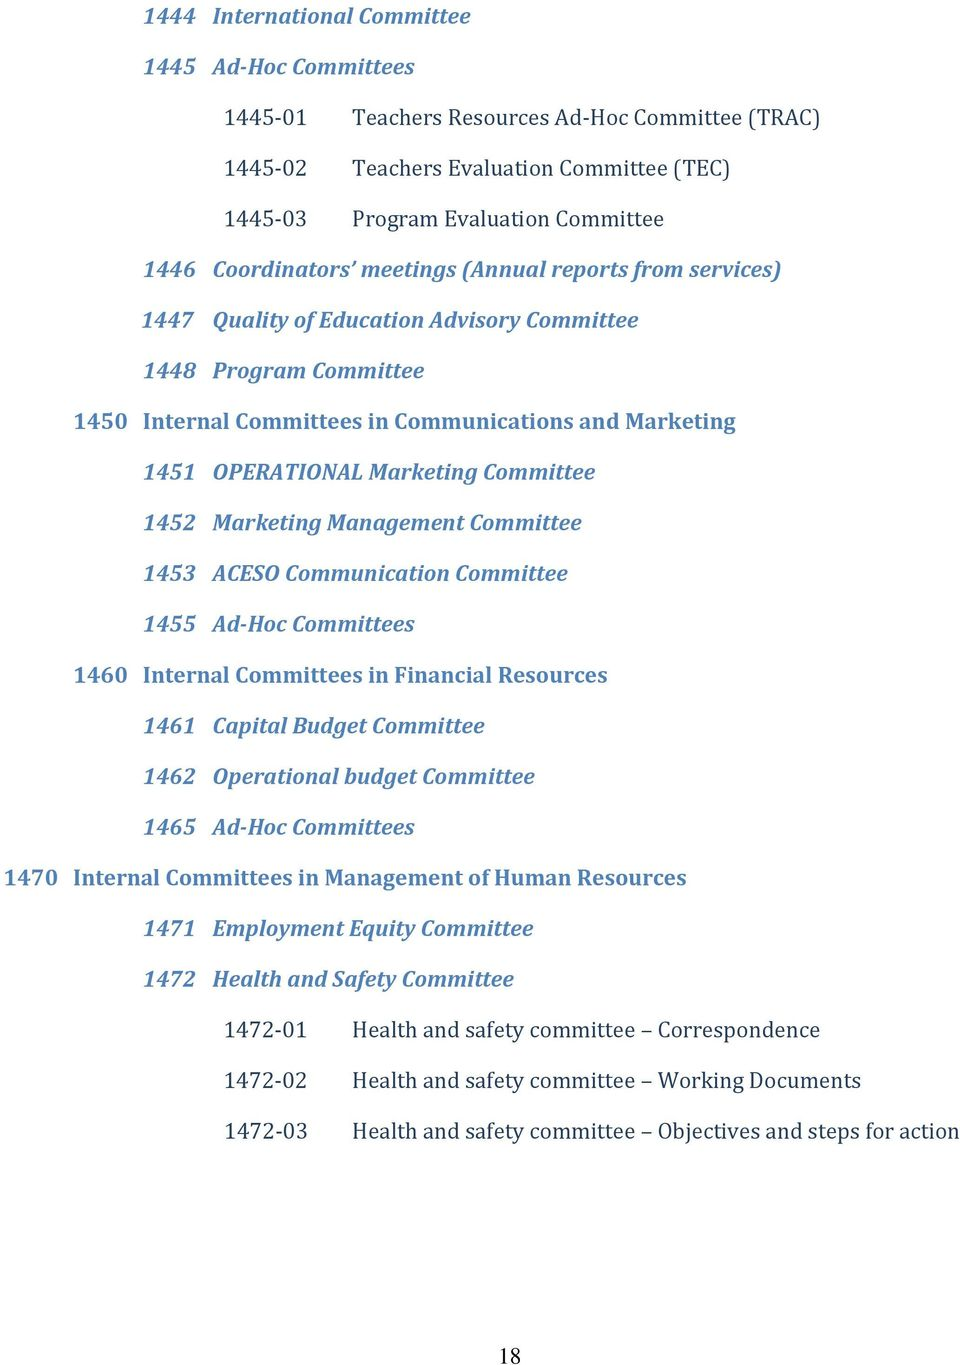 Marketing Committee 1452 Marketing Management Committee 1453 ACESO Communication Committee 1455 Ad-Hoc Committees 1460 Internal Committees in Financial Resources 1461 Capital Budget Committee 1462